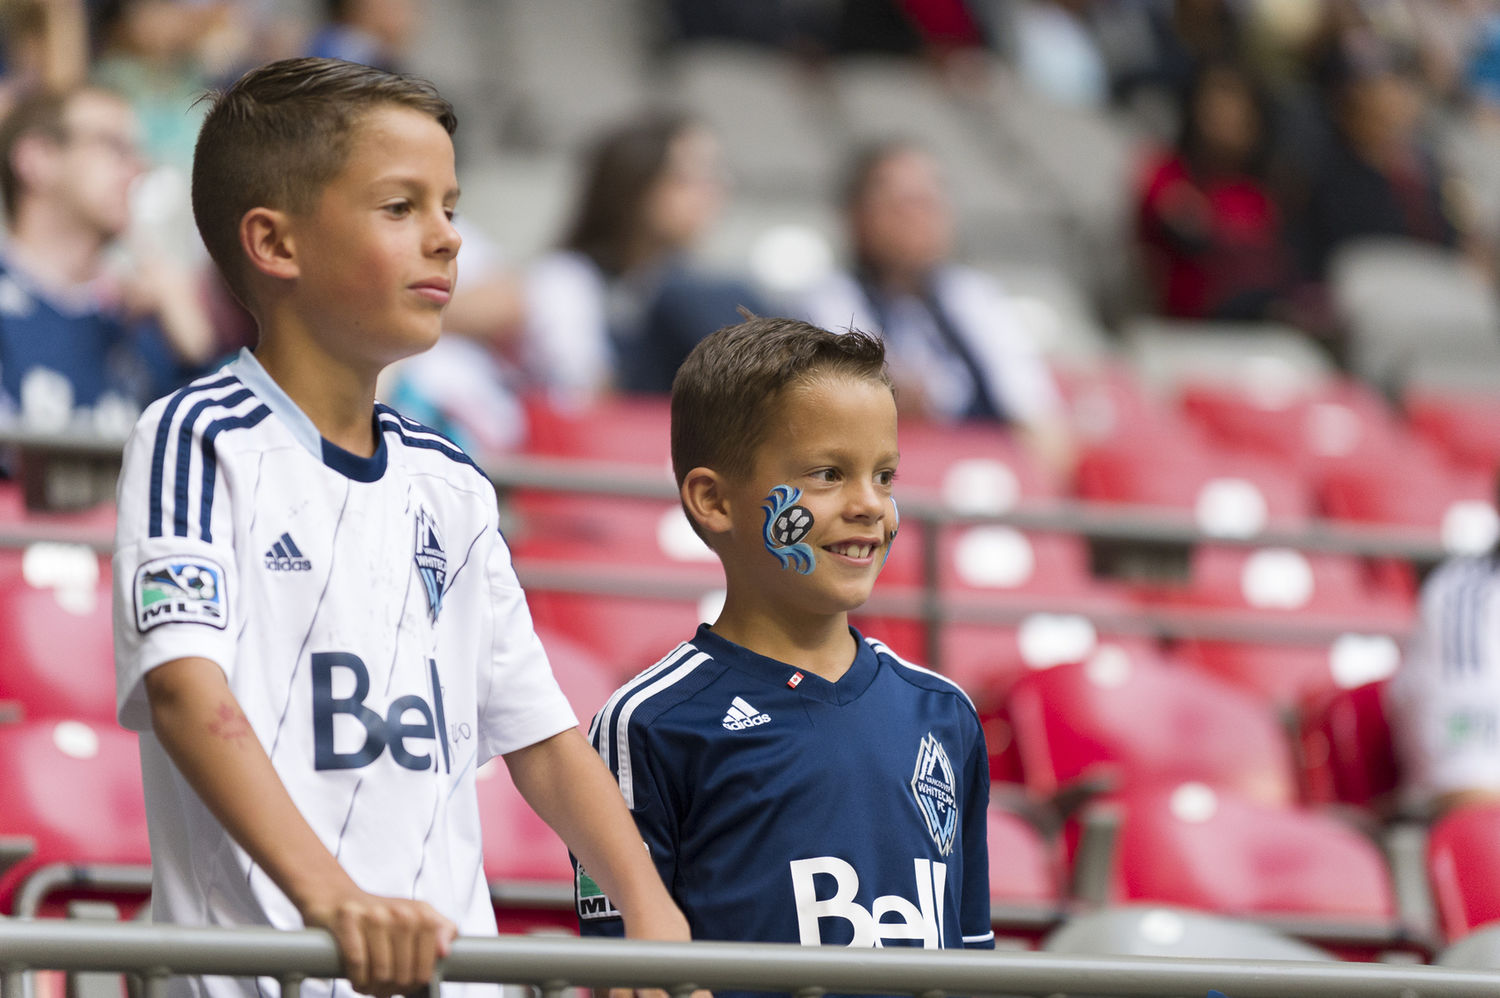 Vancouver Whitecaps- July 5, 2014